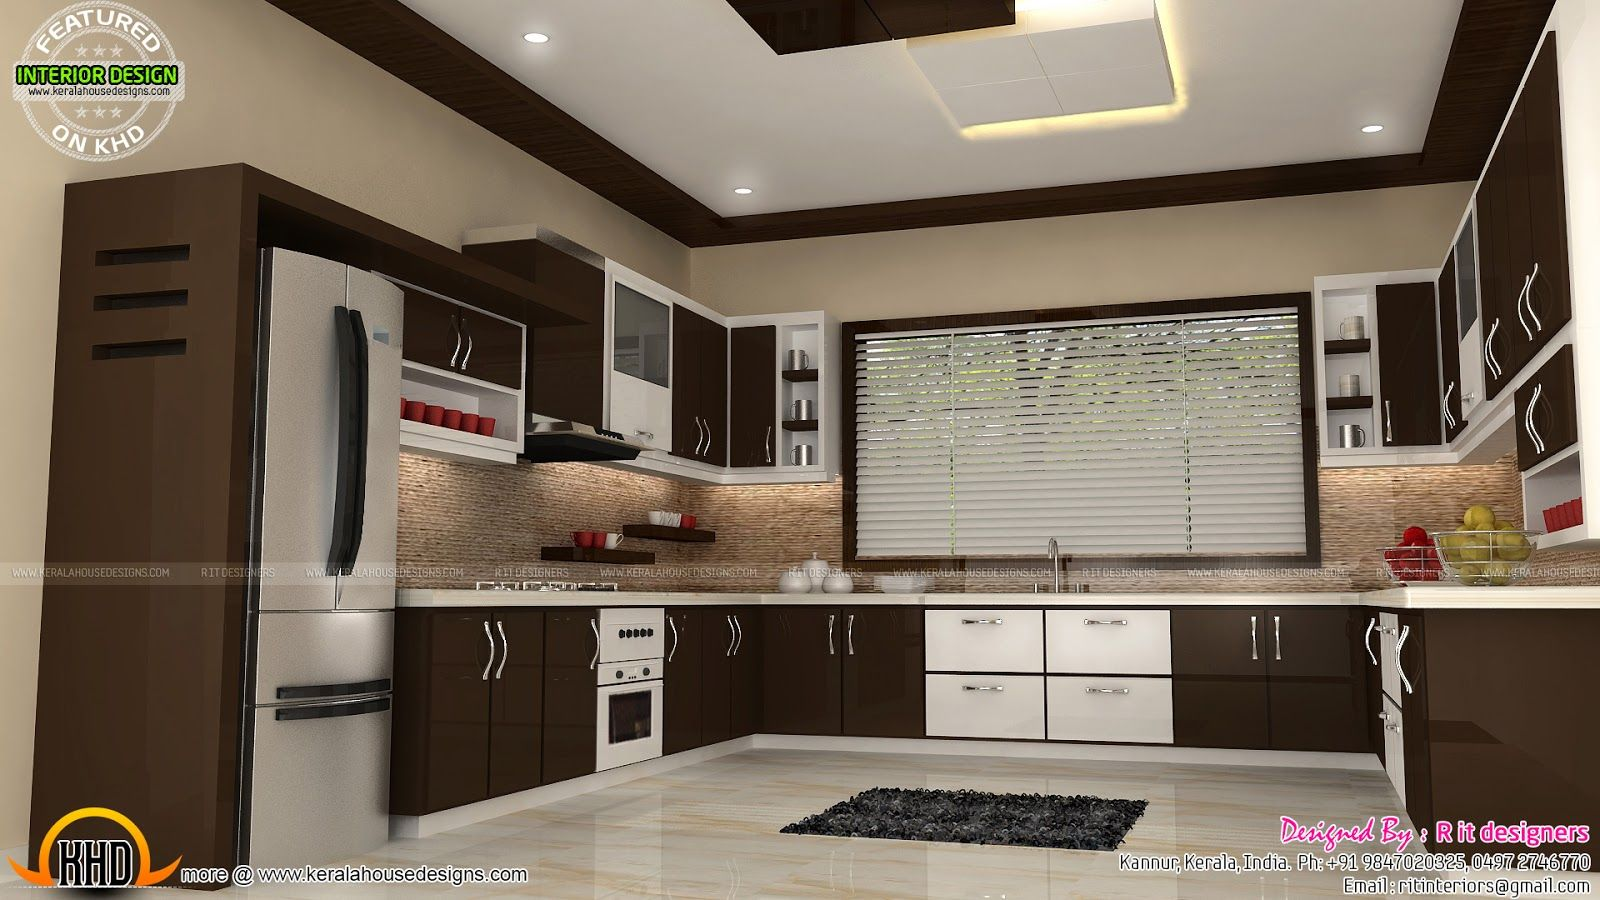 Kerala home interior design dining room kitchen design room interior home decor arrangement ideas with